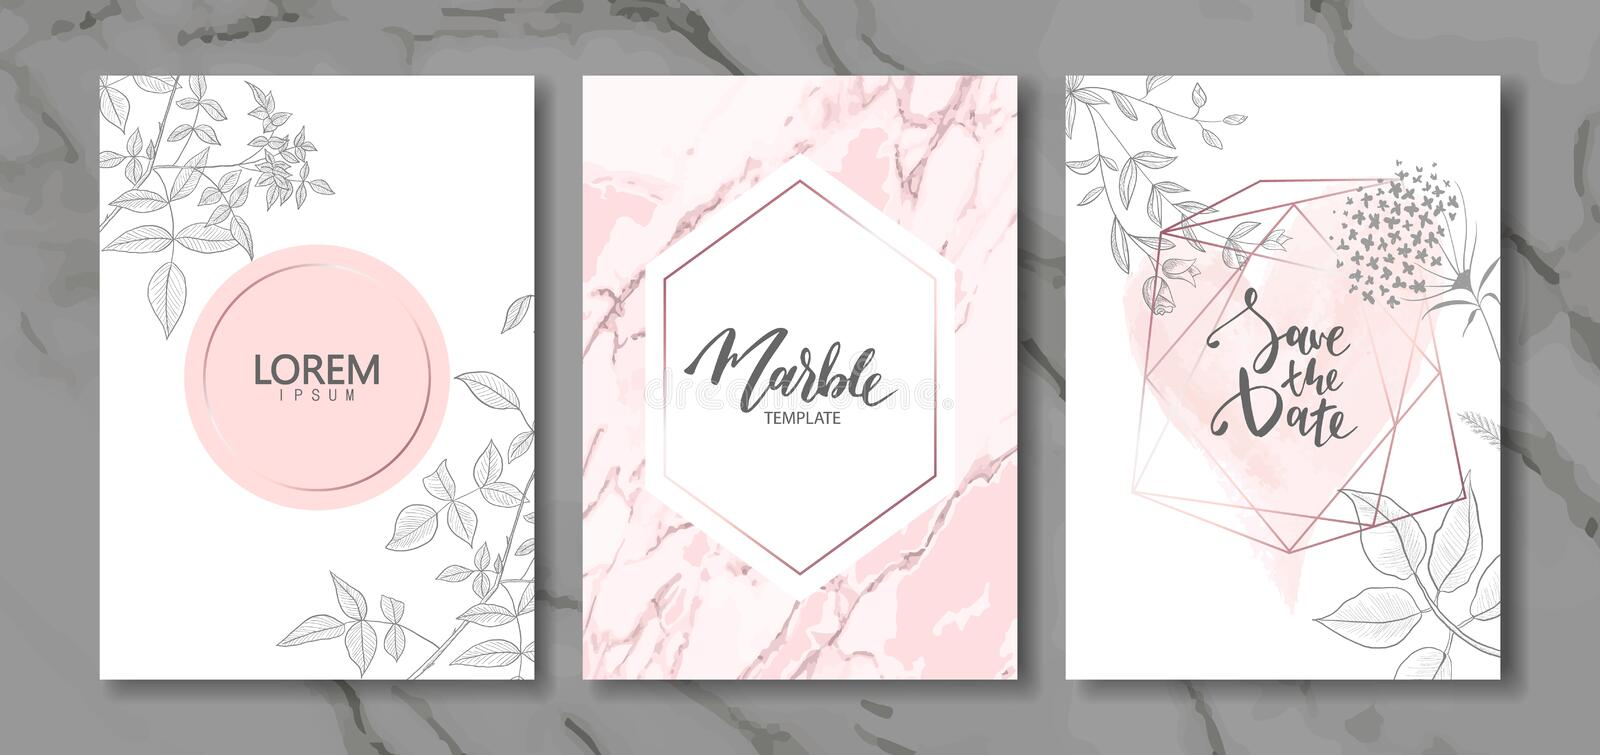 Luxury cards collection with marble texture and hand-drawn plants.Vector trendy background. Modern set of abstract card, template, stock illustration